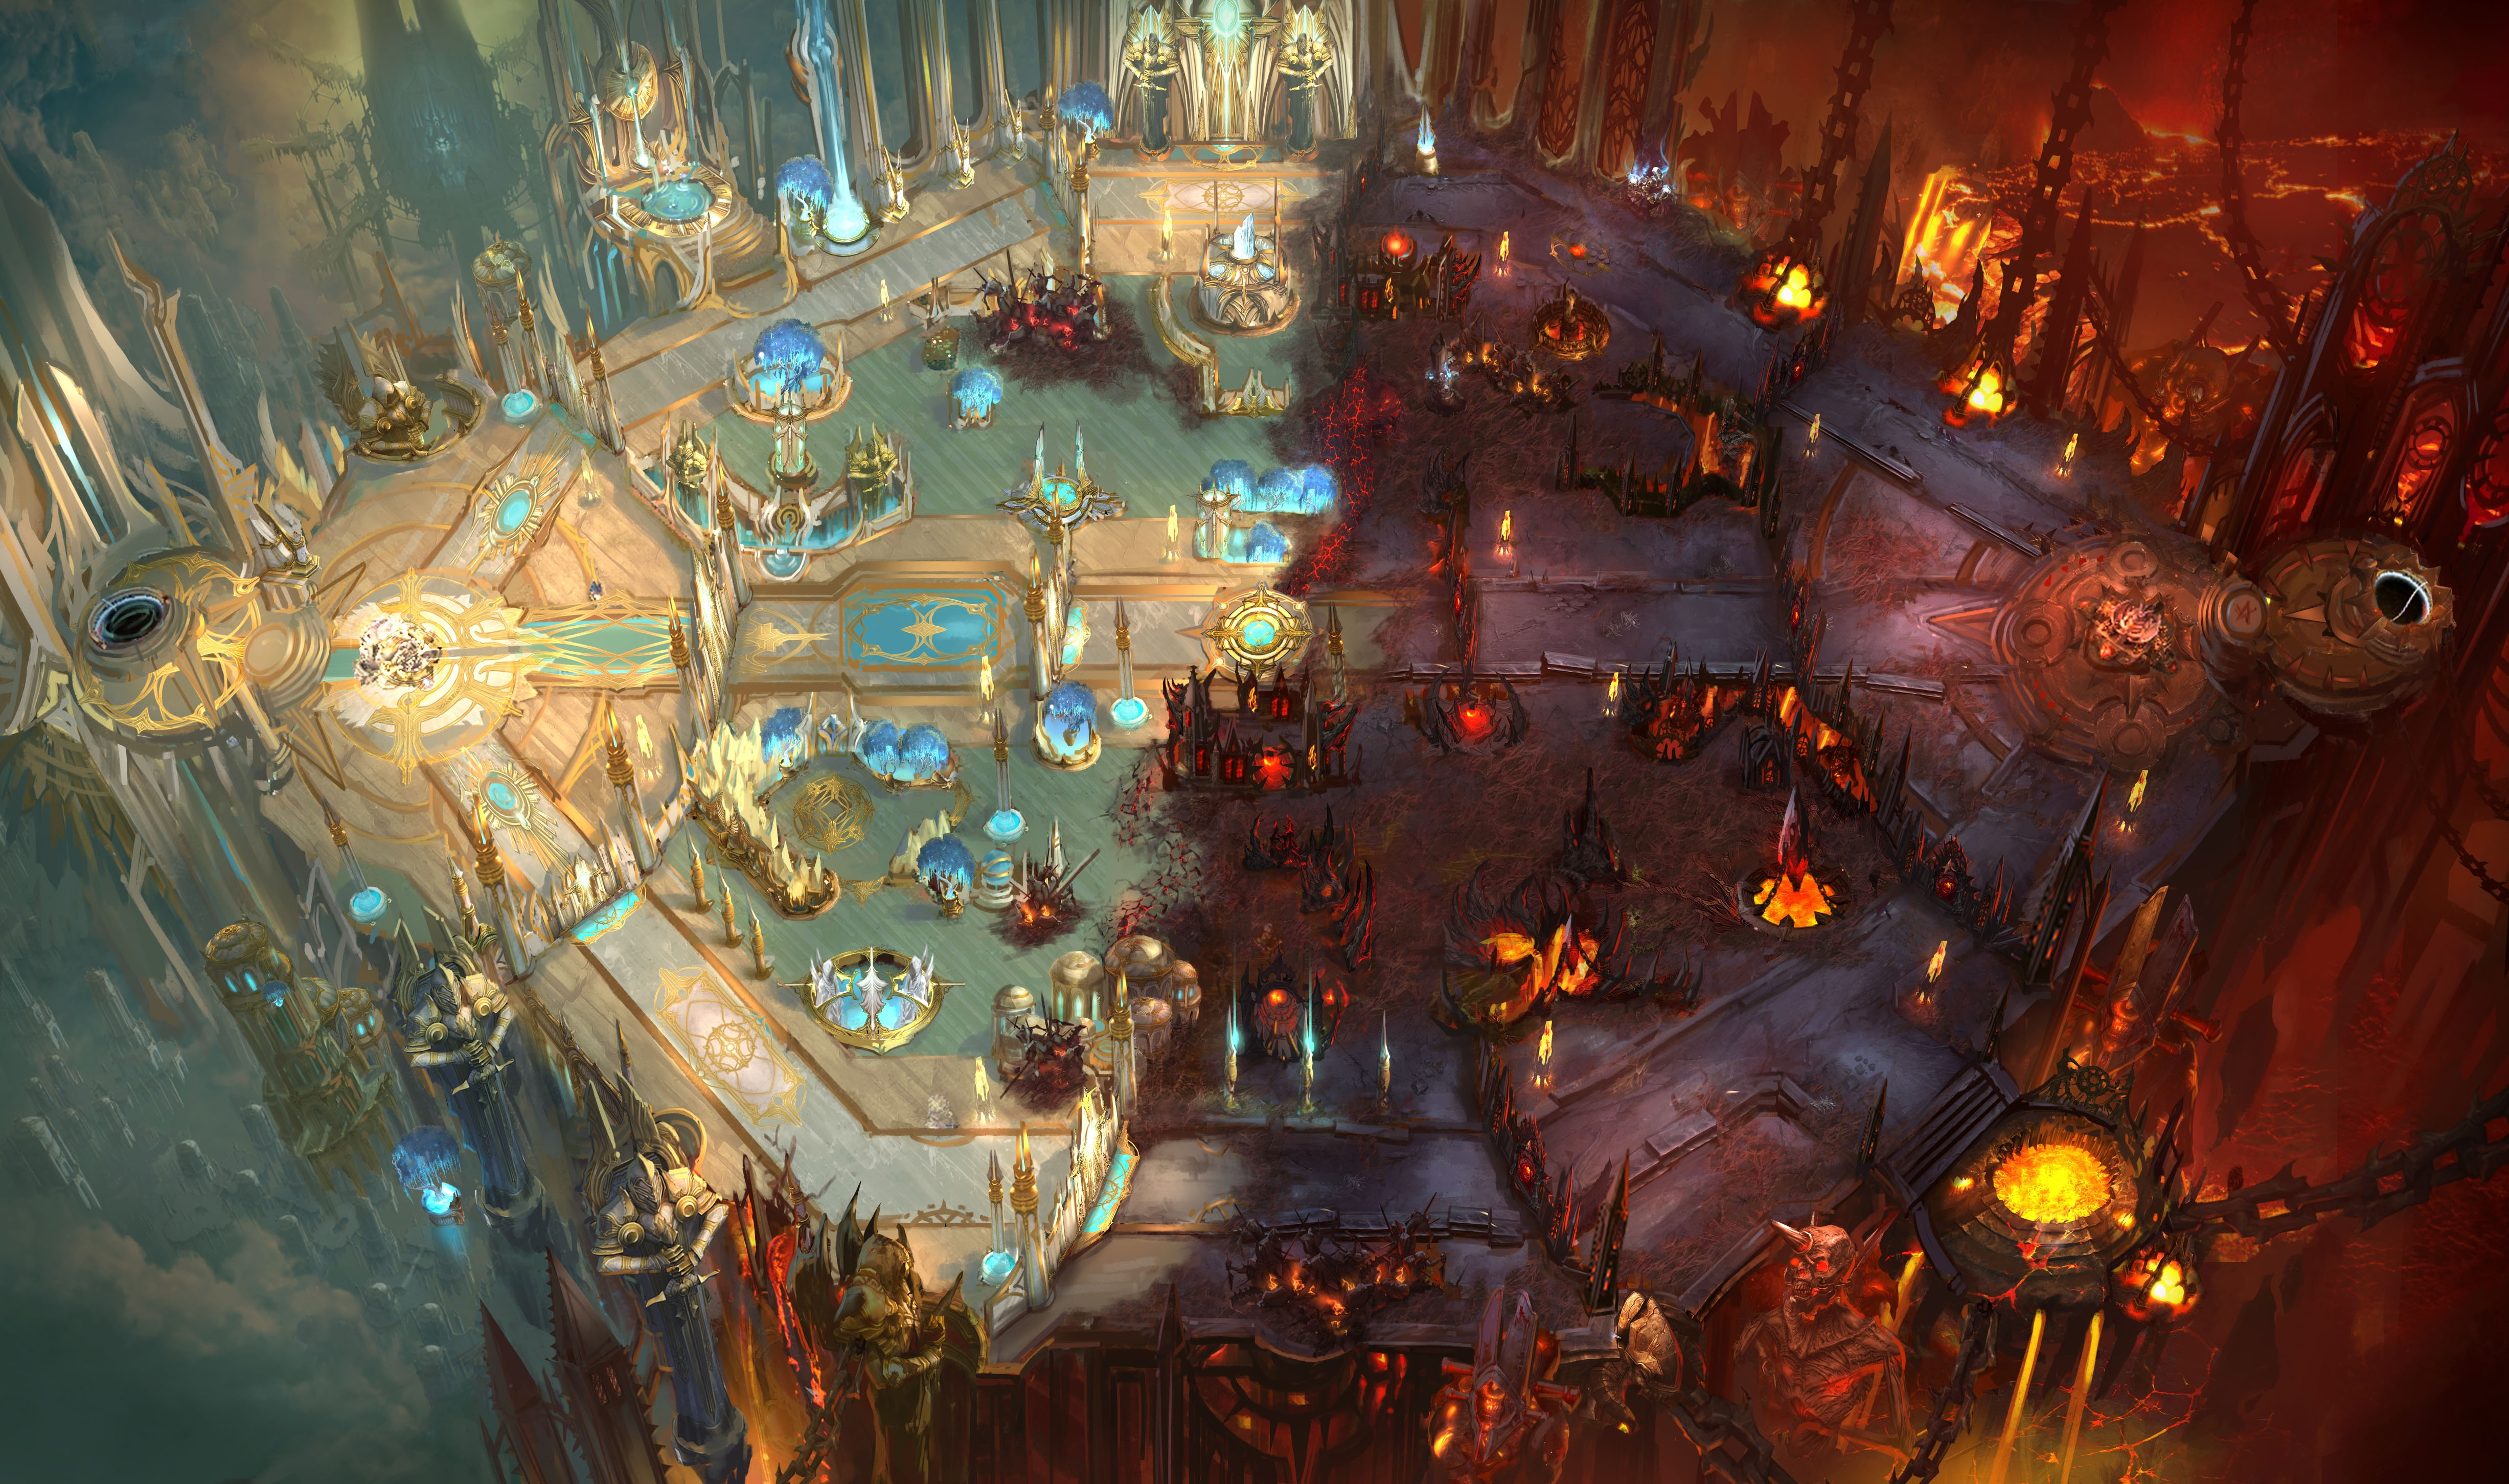 Wallpaper heroes of the storm best games 2015 game for Wallpaper home 2015